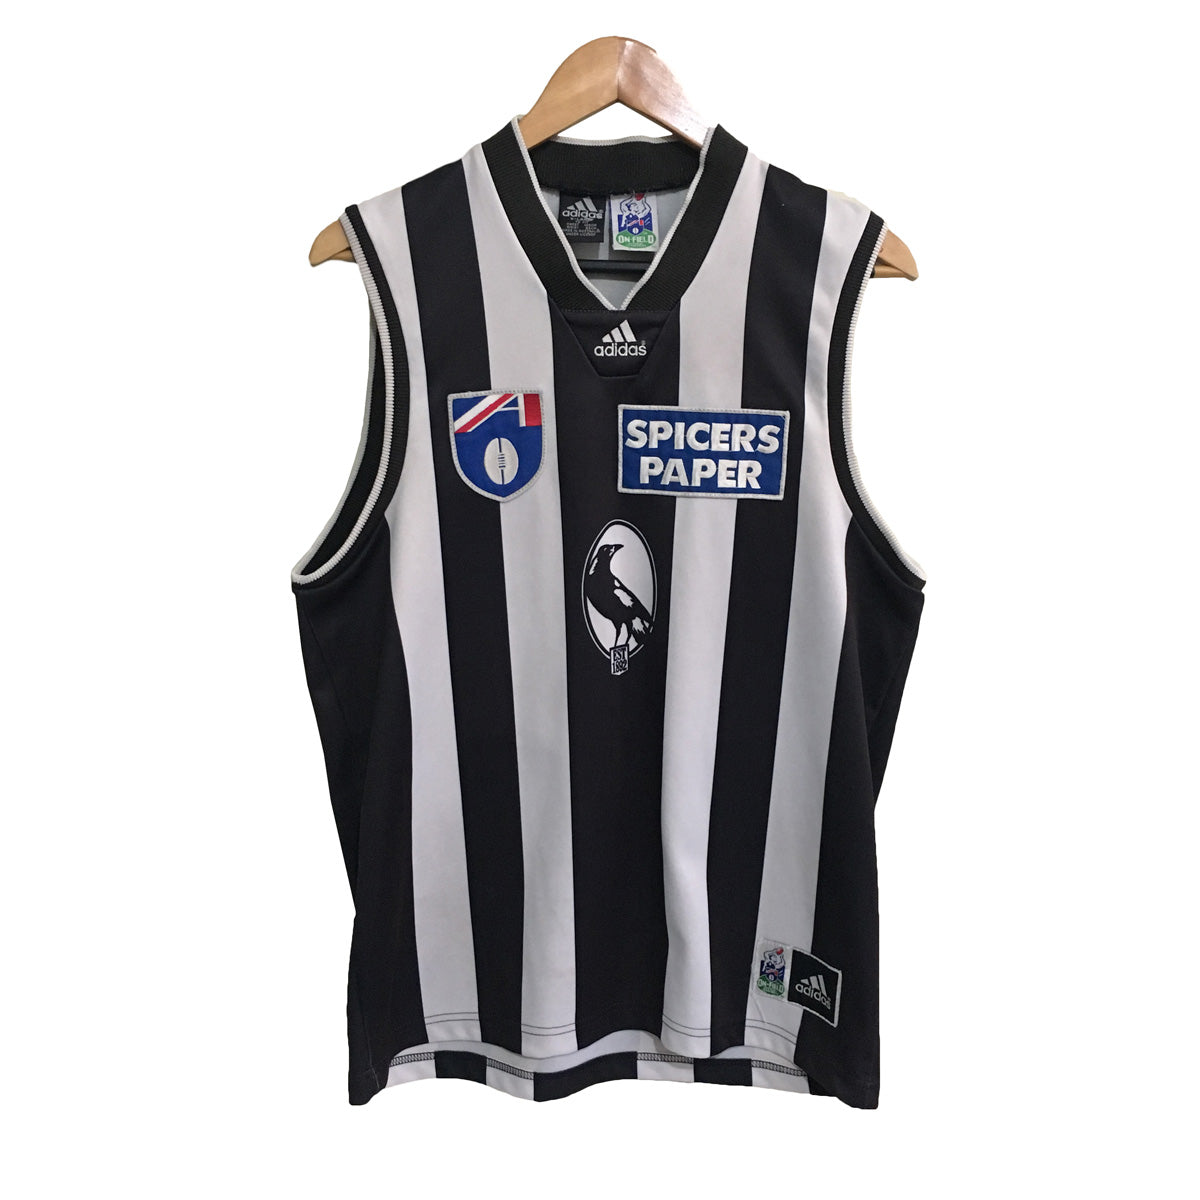 Collingwood Magpies Adidas Vintage 1998 AFL Football Guernsey Mens XL